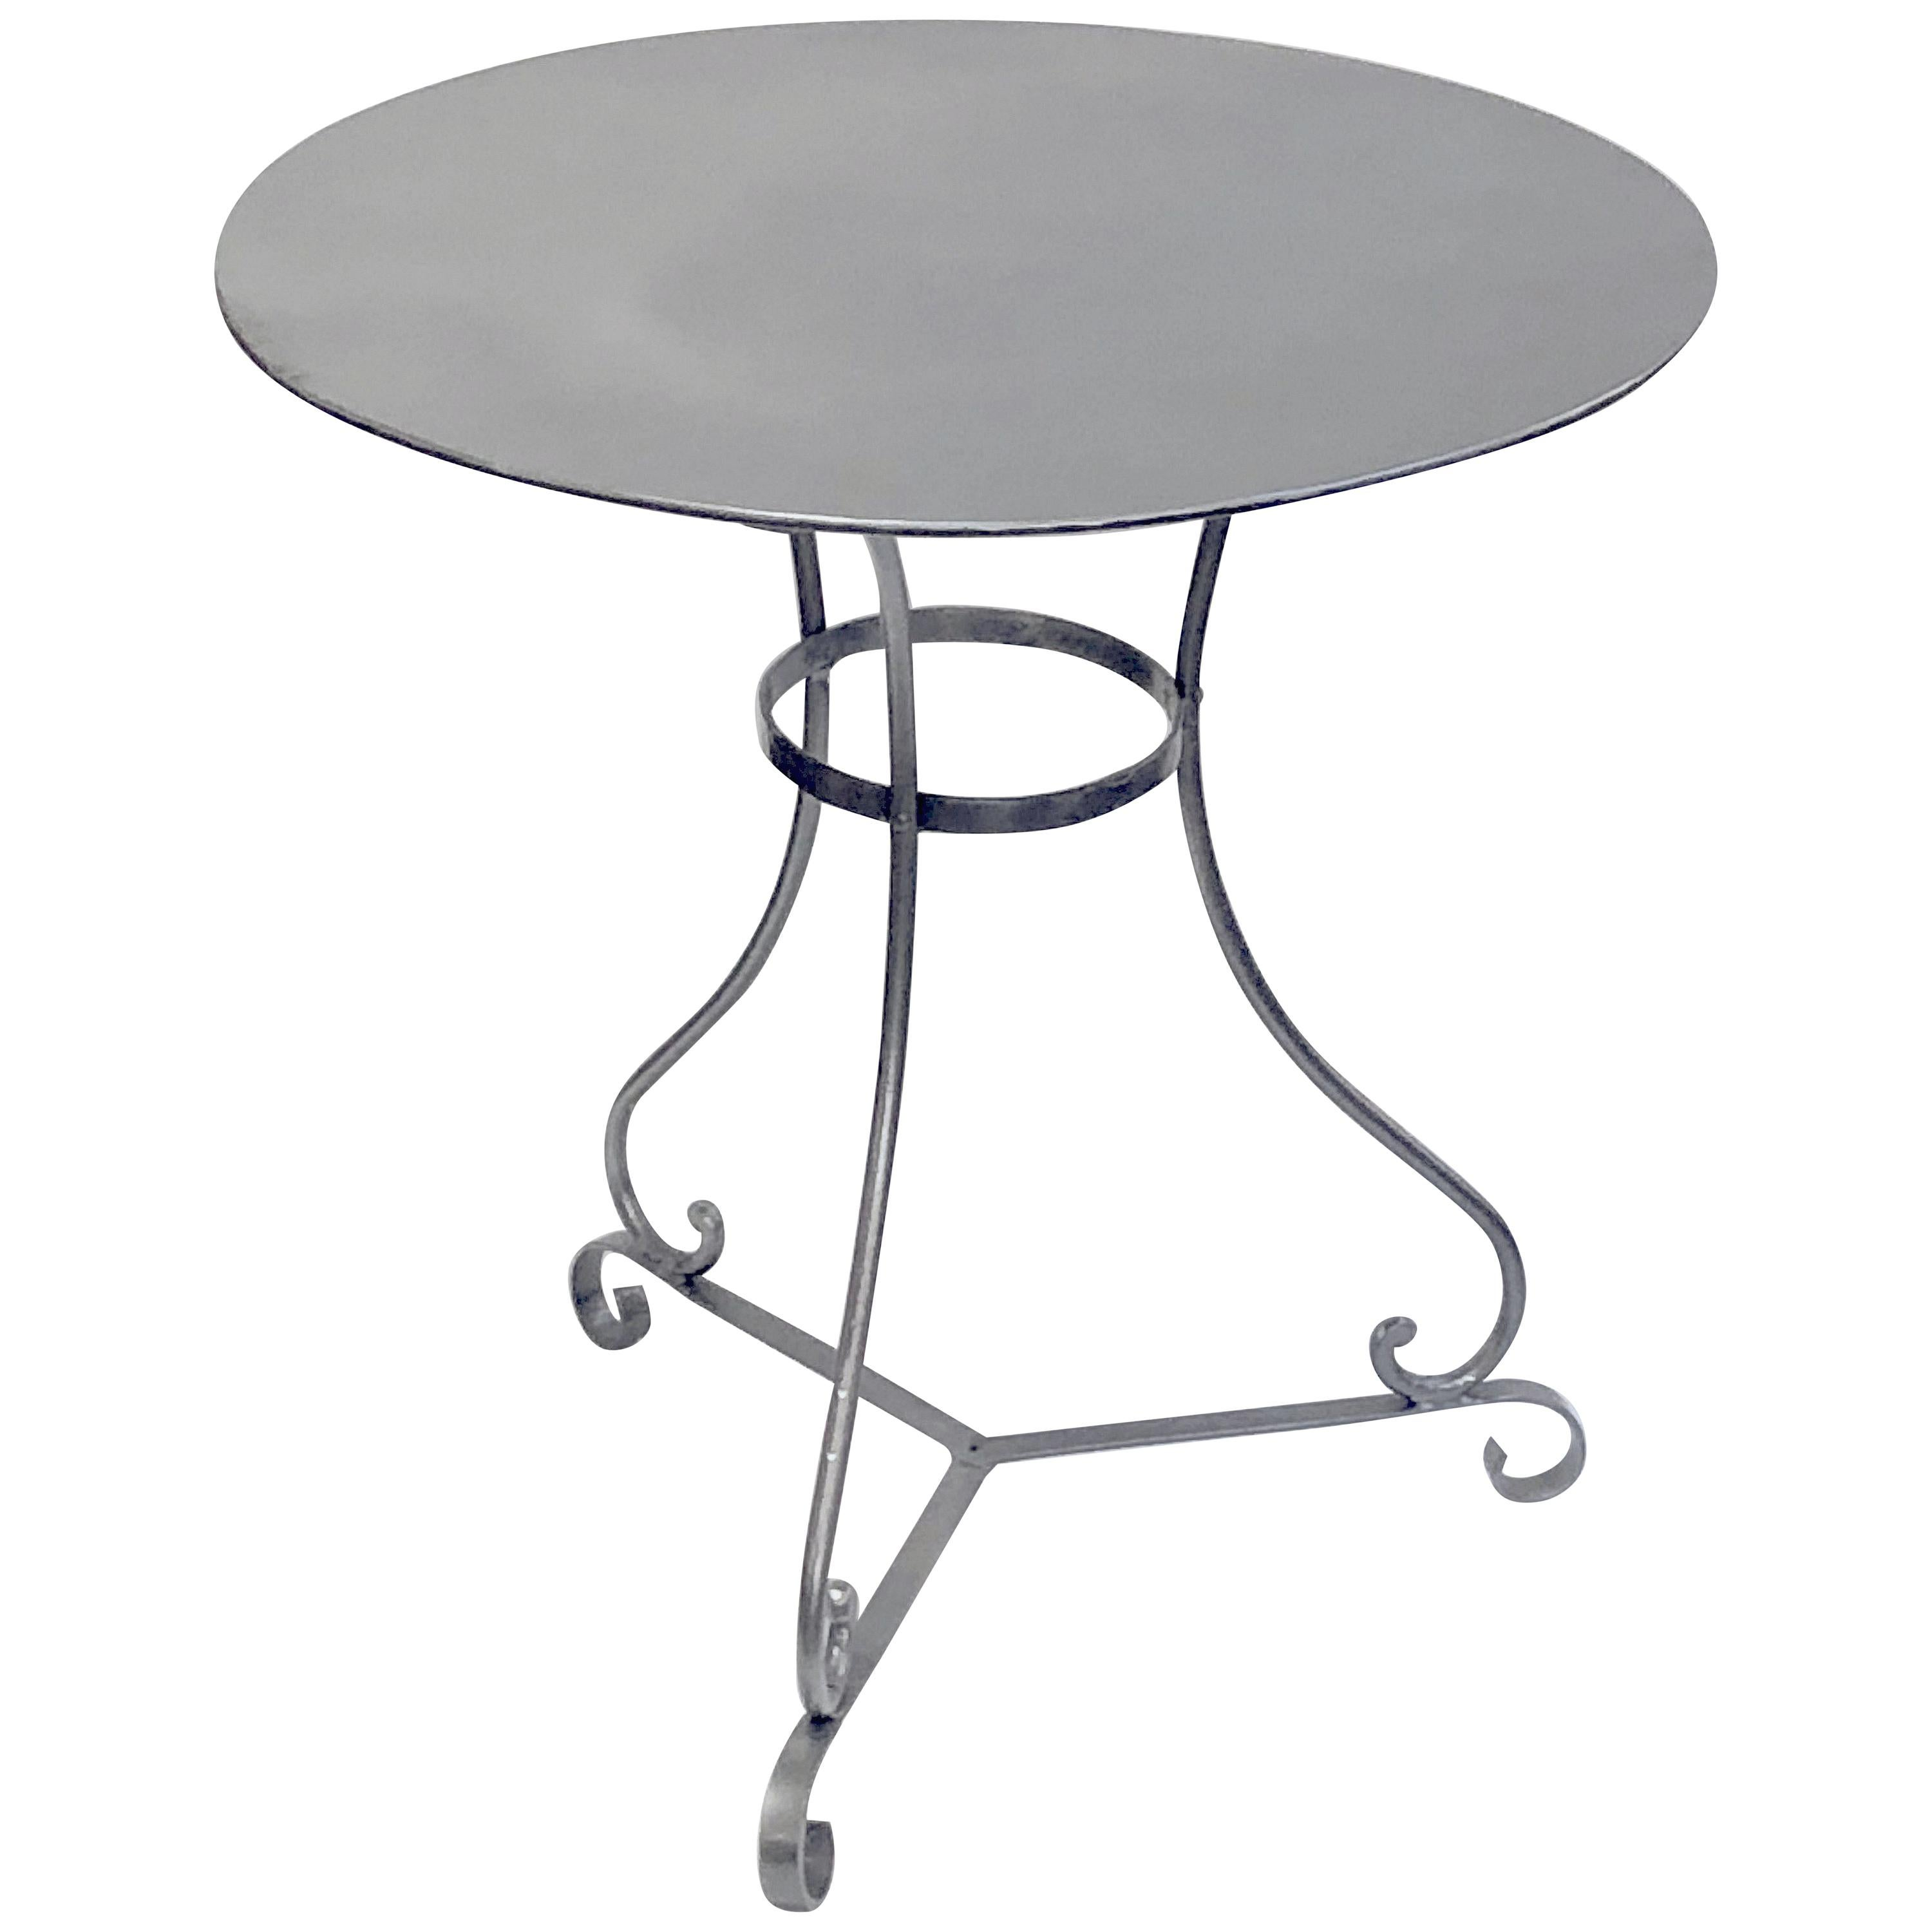 French Round Café or Bistro Pub Table